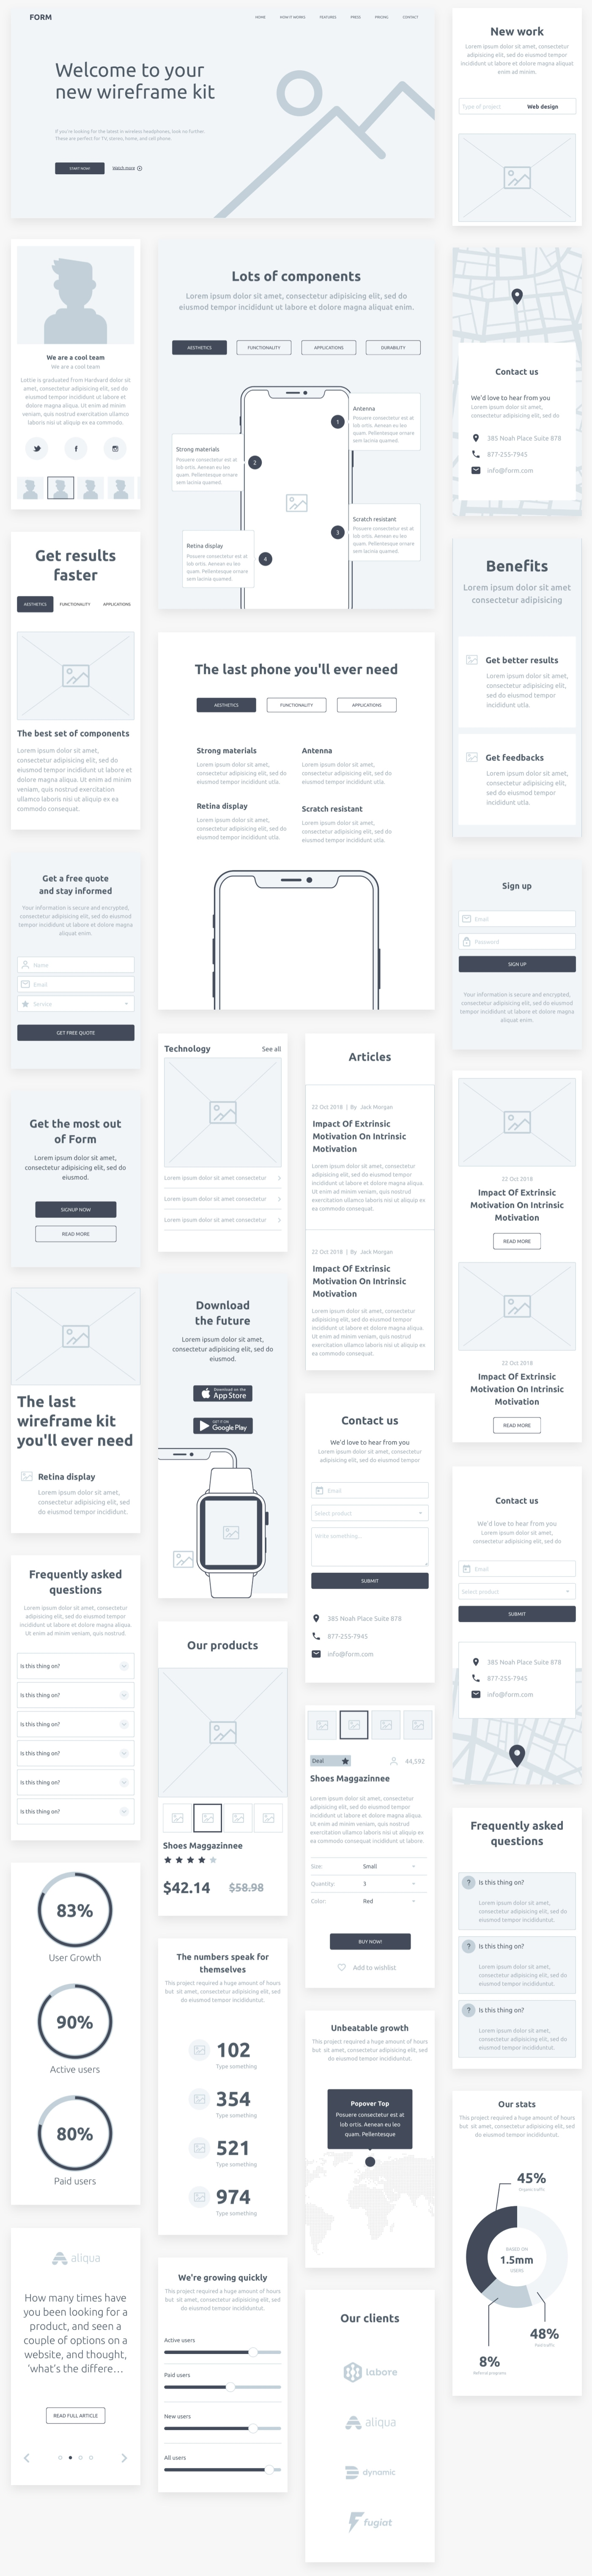 Form - Wireframe kit from InVision - Form is a free wireframe kit for speeding up your design workflow. Layouts sized for mobile, desktop, and tablet and available in Sketch and PSD formats.